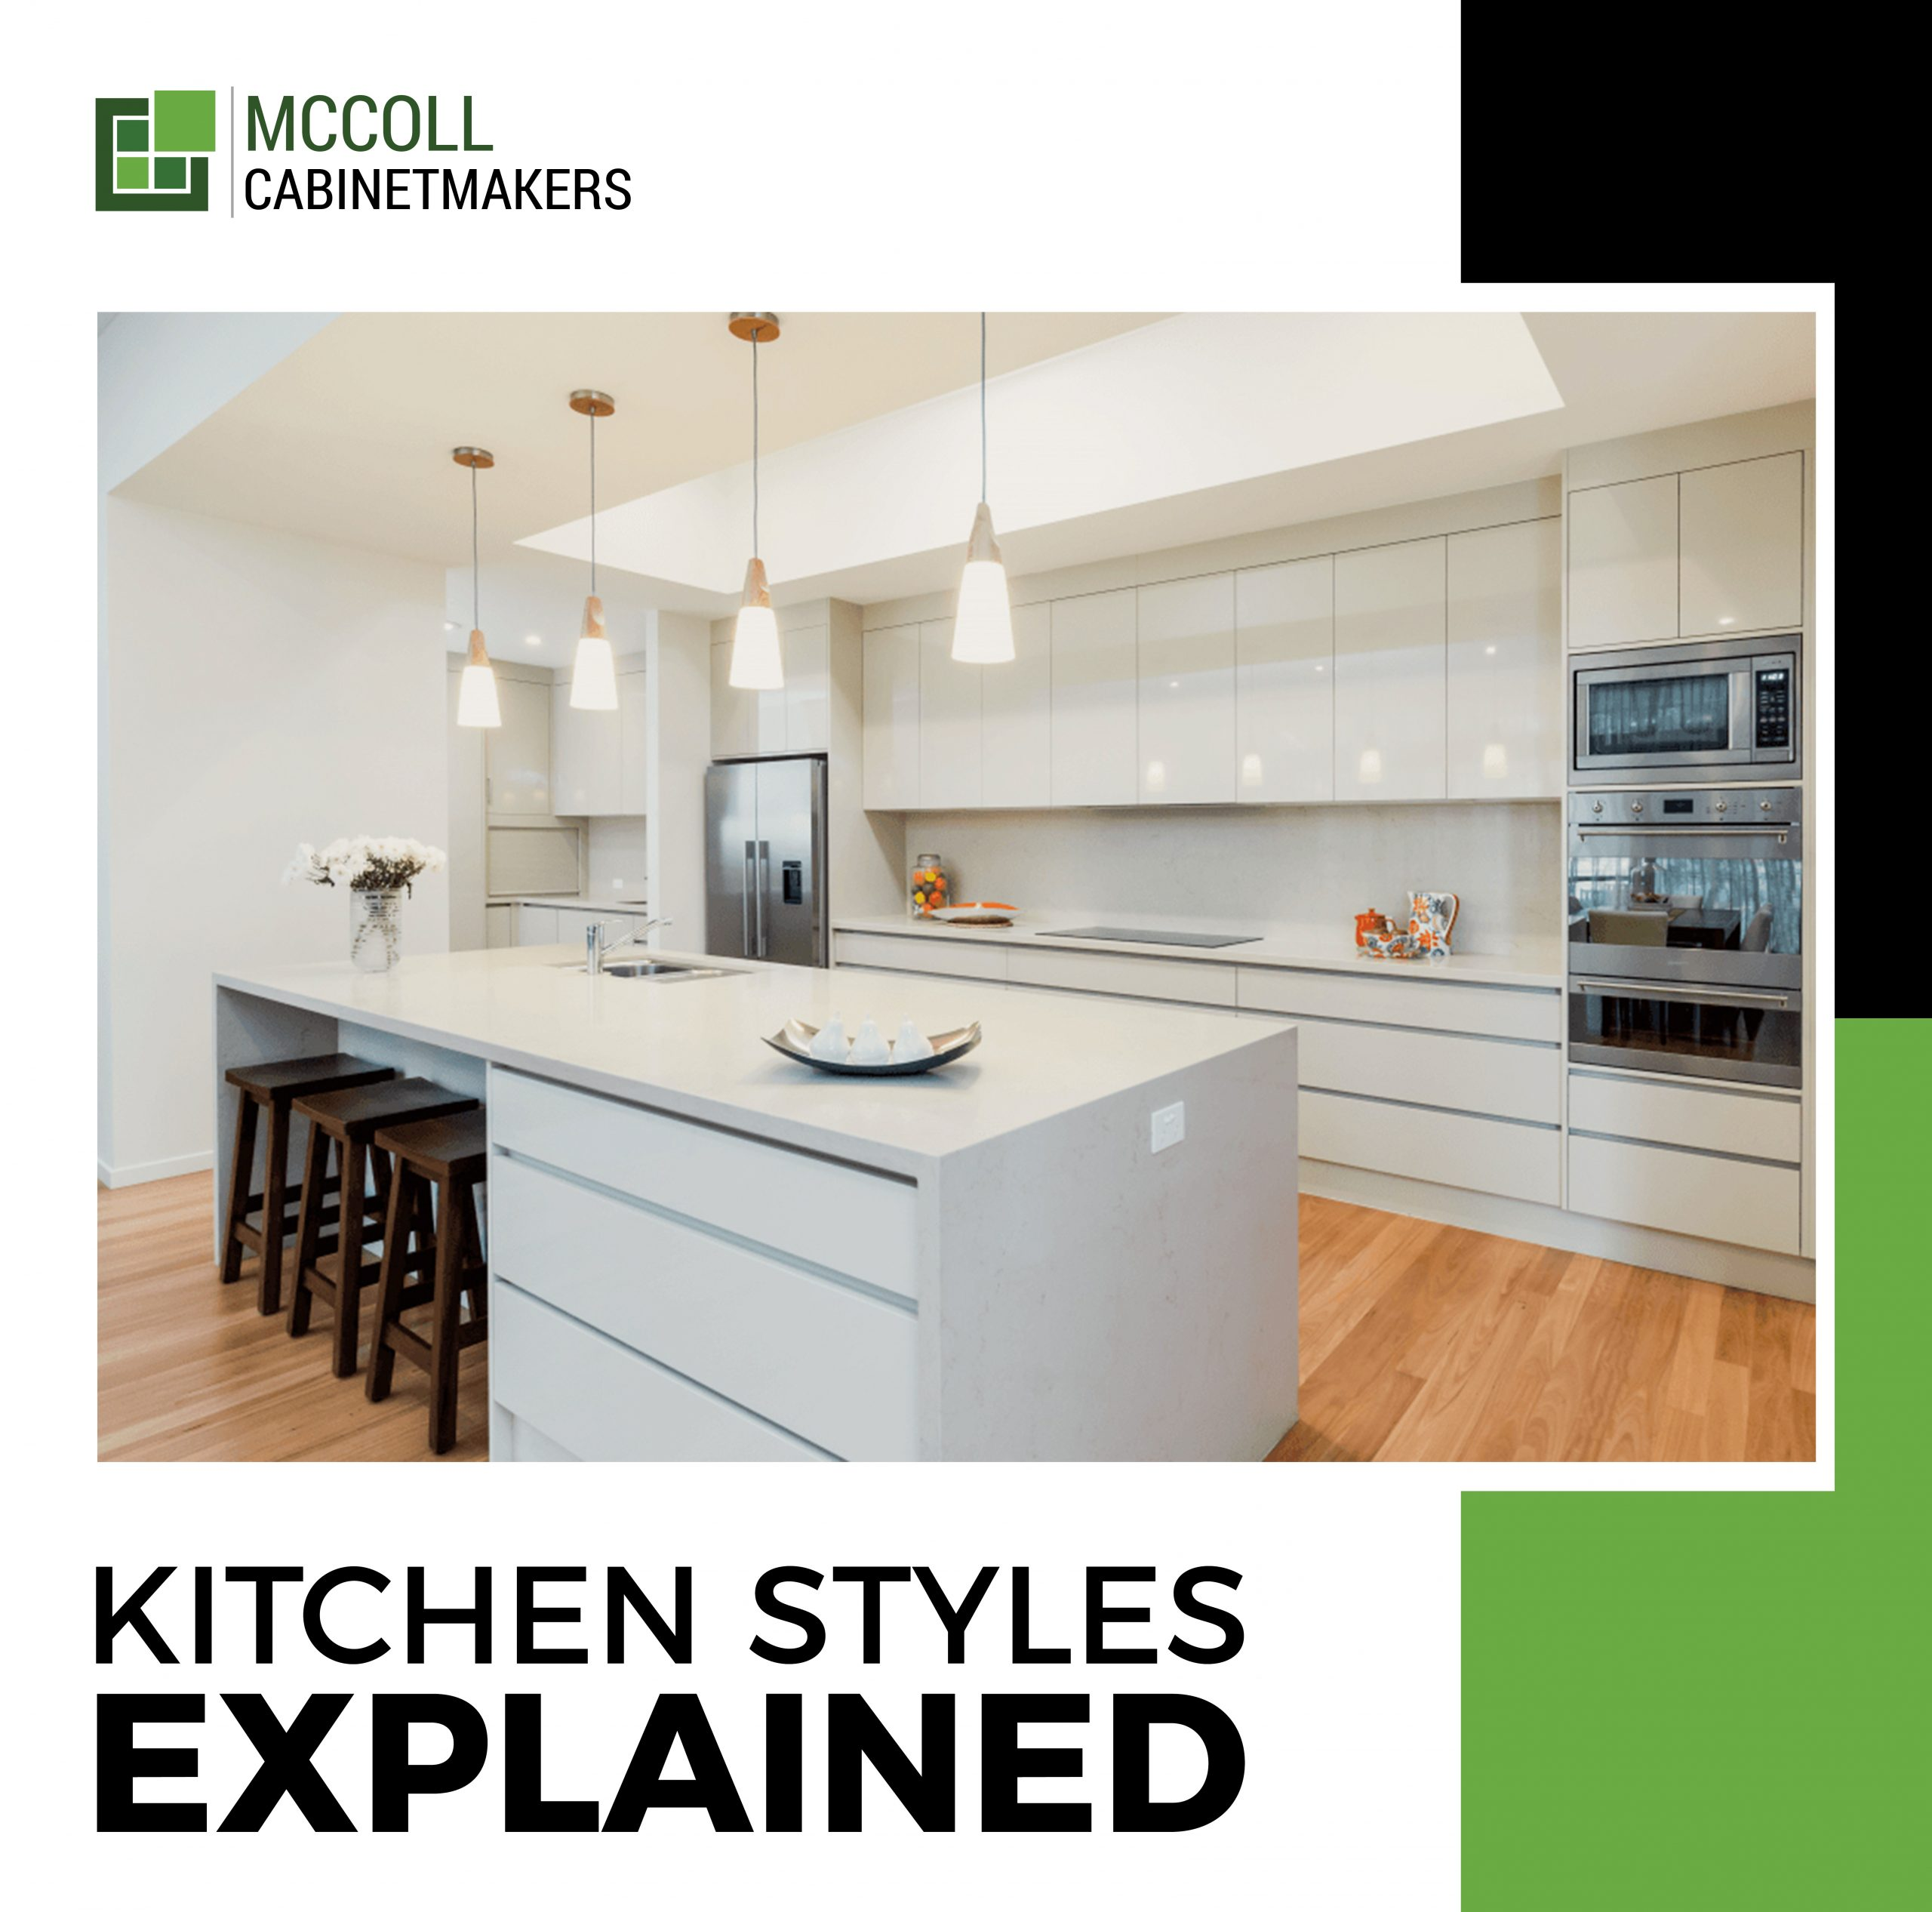 The Different Styles Of Kitchens Explained